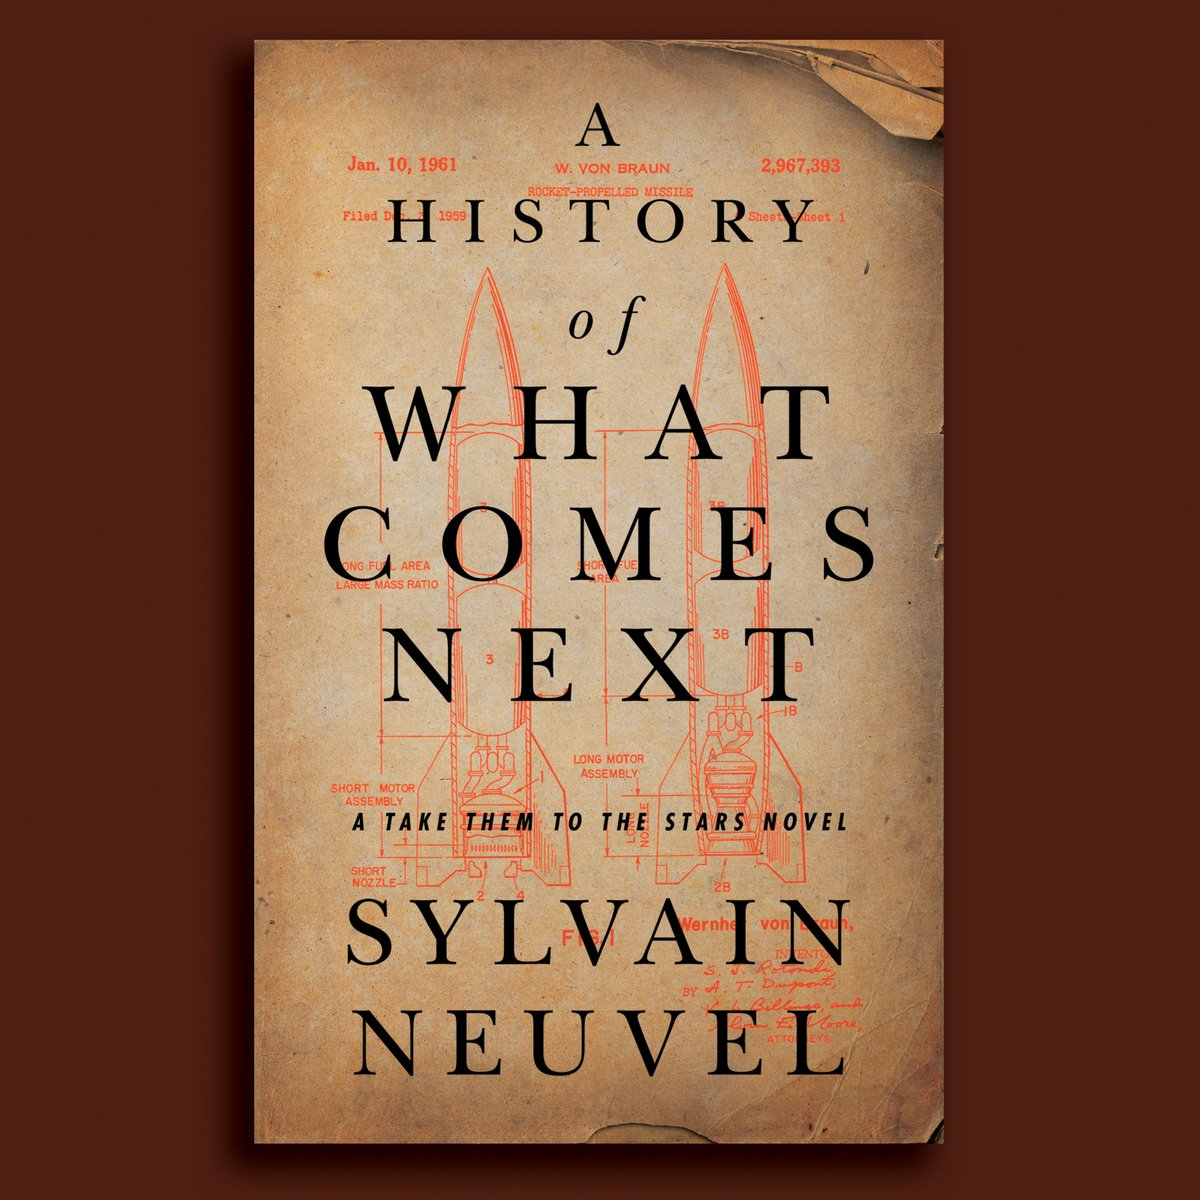 A HISTORY OF WHAT COMES NEXT by @neuvel blends a fast moving, darkly satirical look at 1940s rocketry with an exploration of the amorality of progress and the nature of violence. 🚀 https://t.co/ZqSbt7LeqS https://t.co/KbVm6pycJQ